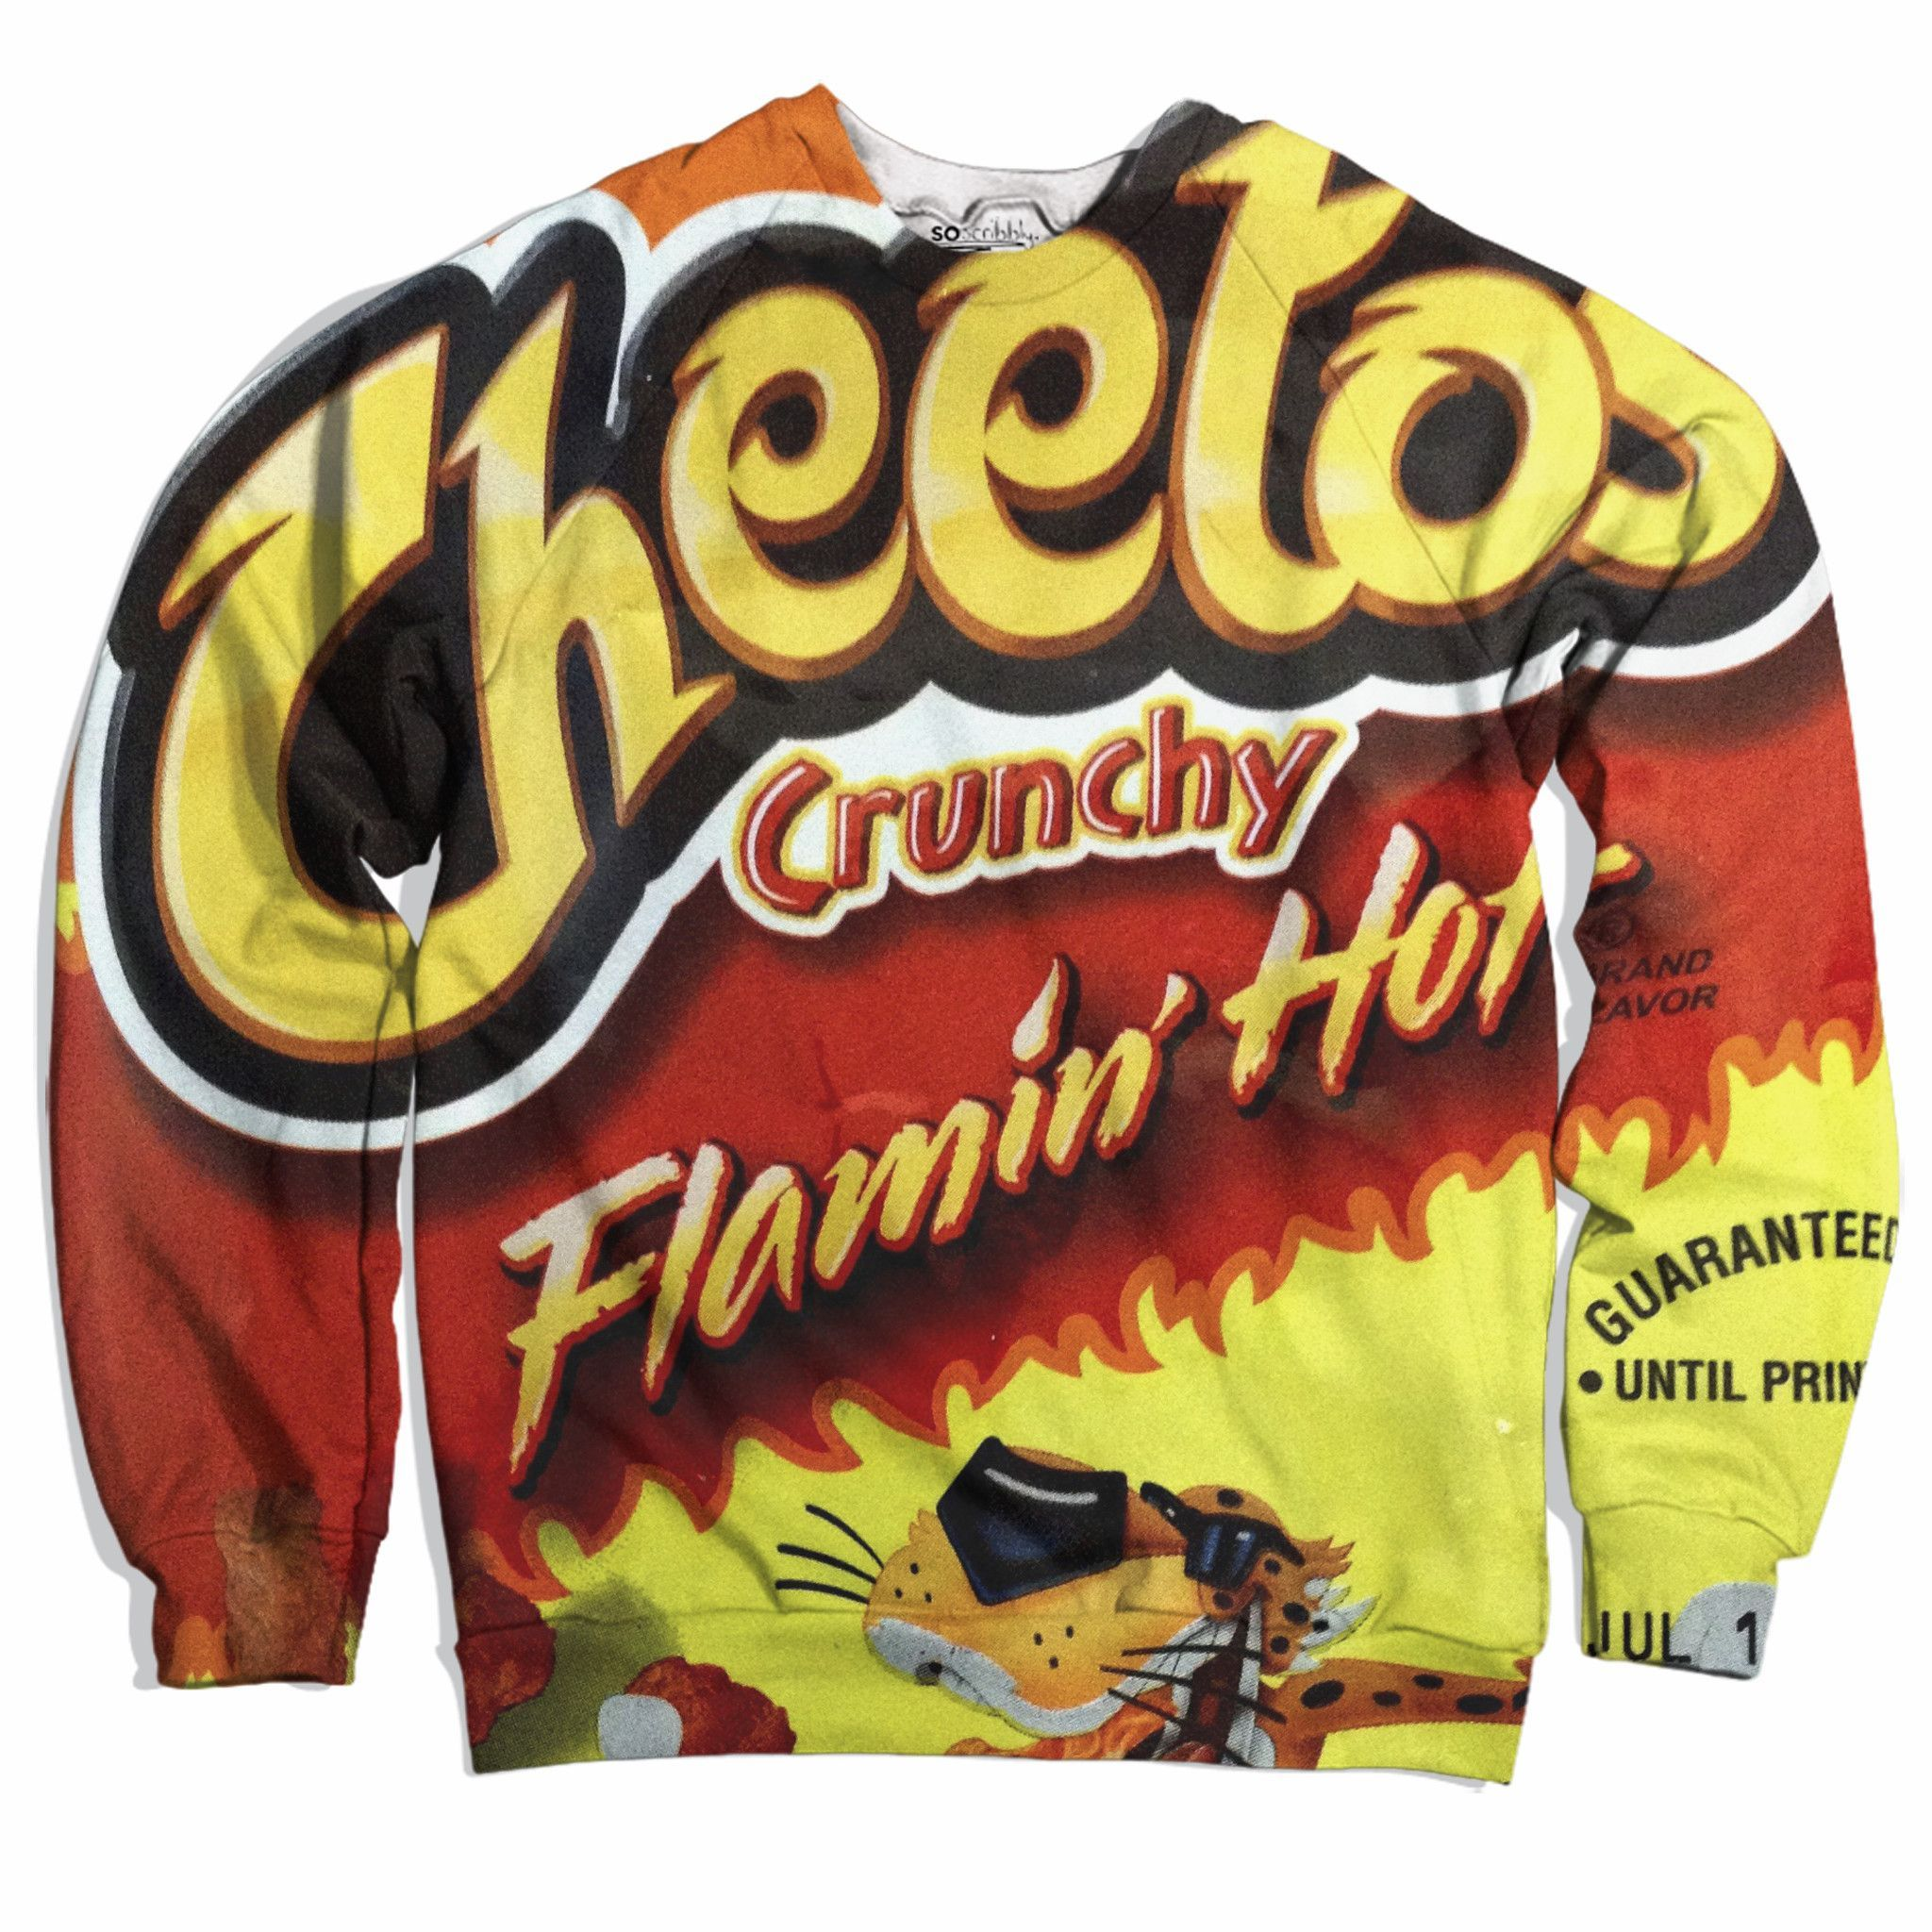 Flamin hot cheetos sweater hot sweater cool sweaters